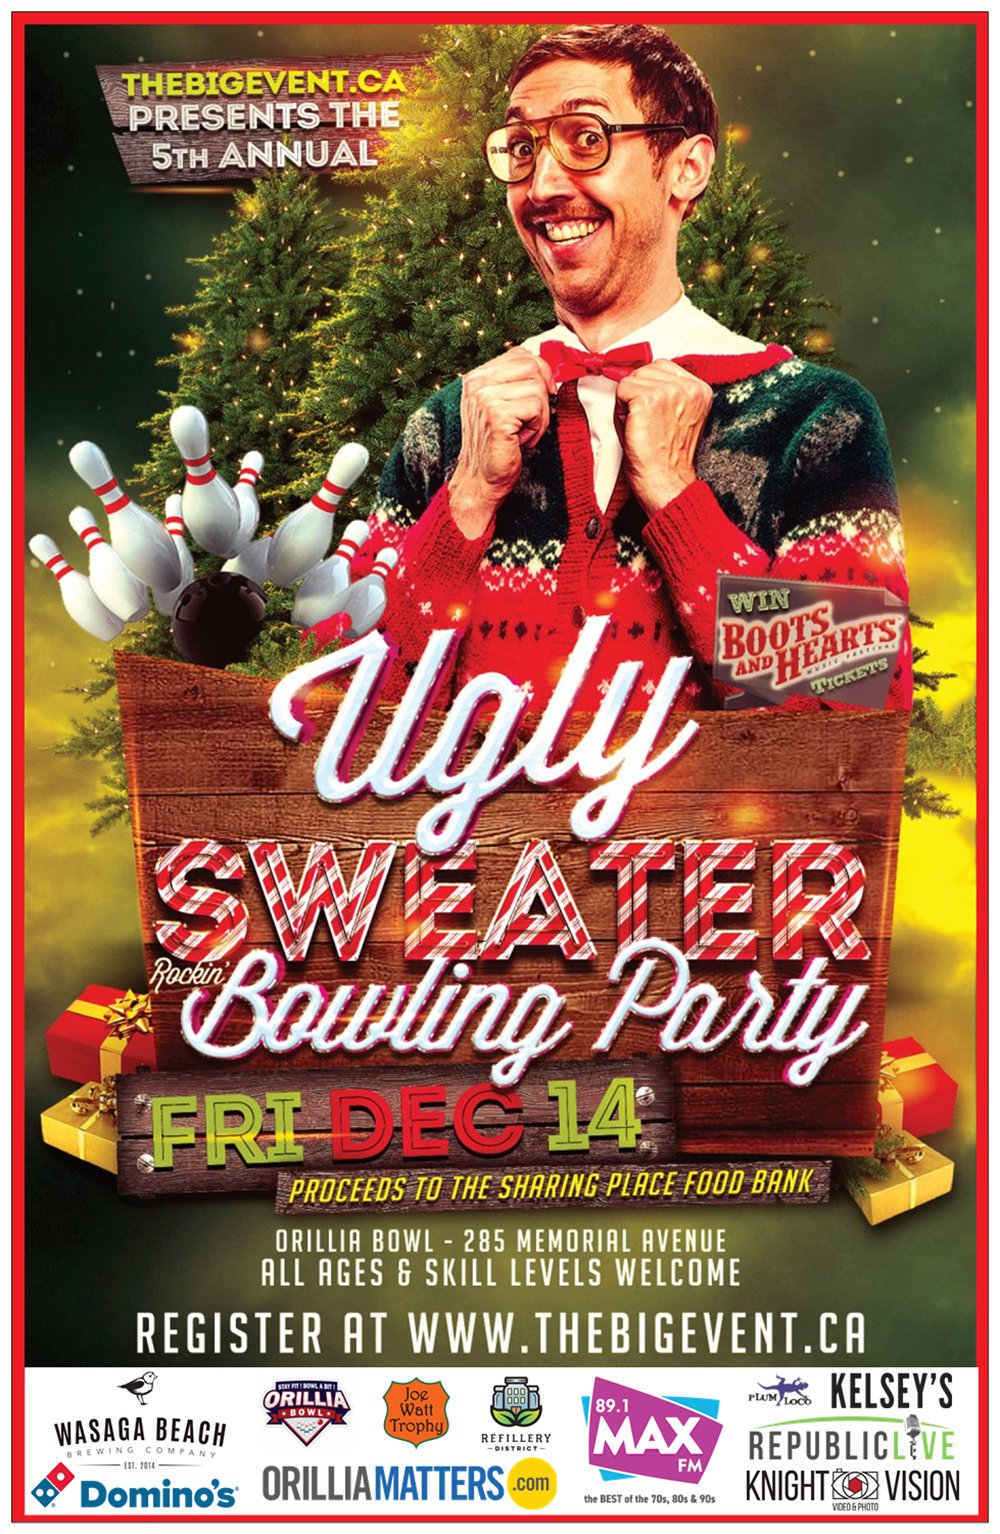 Web poster w logos - 5TH ANNUAL UGLY SWEATER BOWLING PARTY